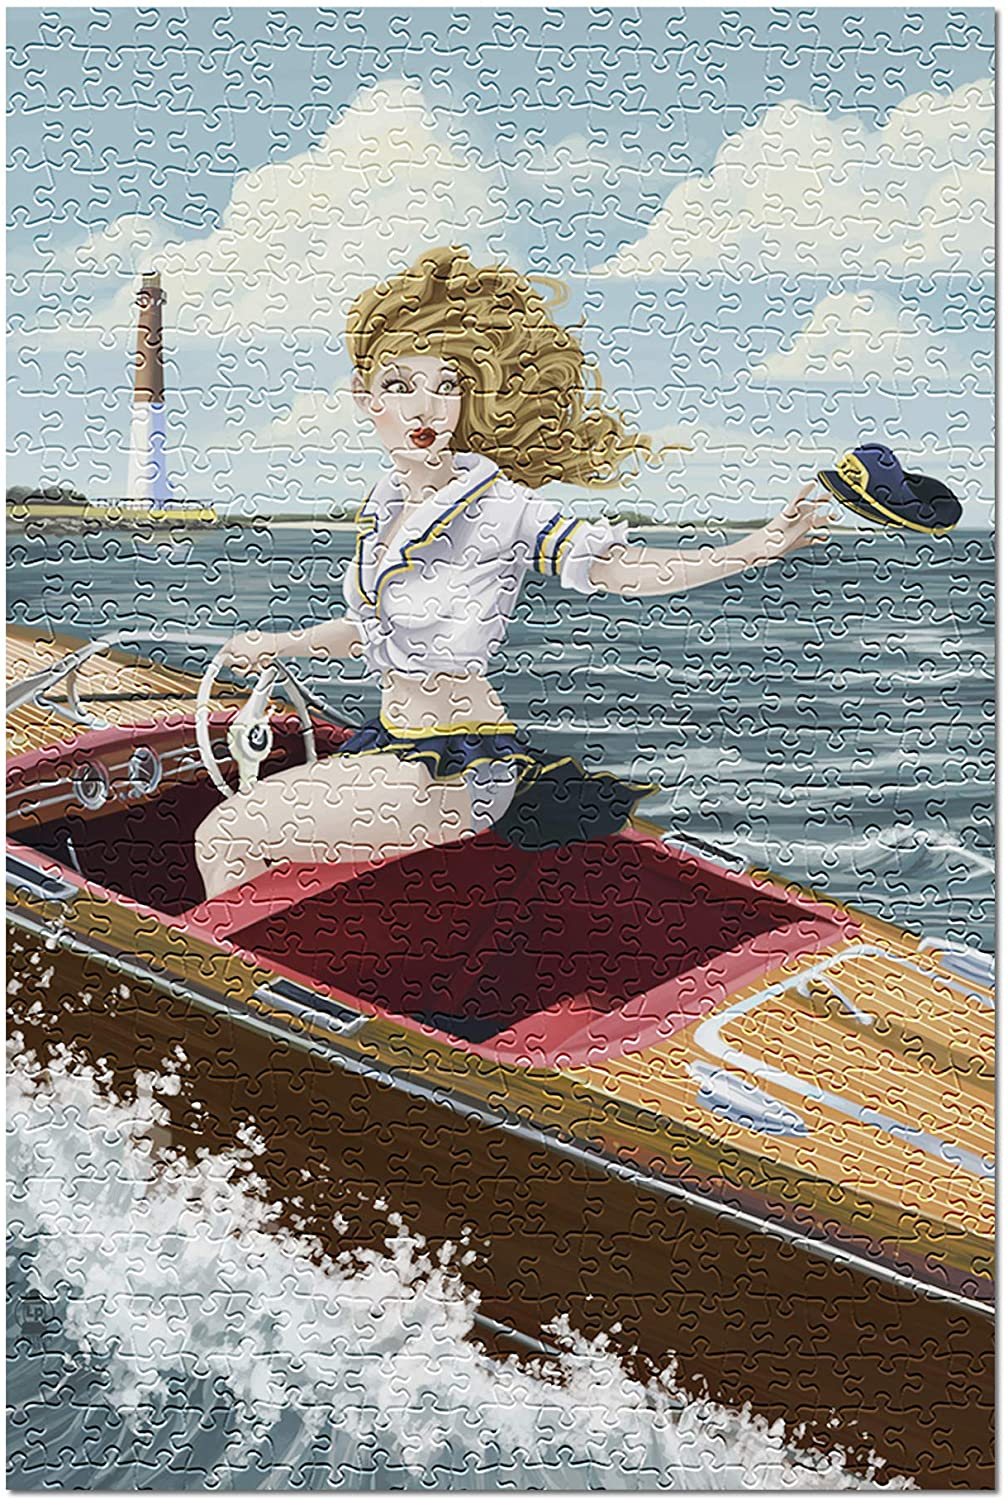 Pinup Girl Boating (Premium 500 Piece Jigsaw Puzzle for Adults, 13x19)